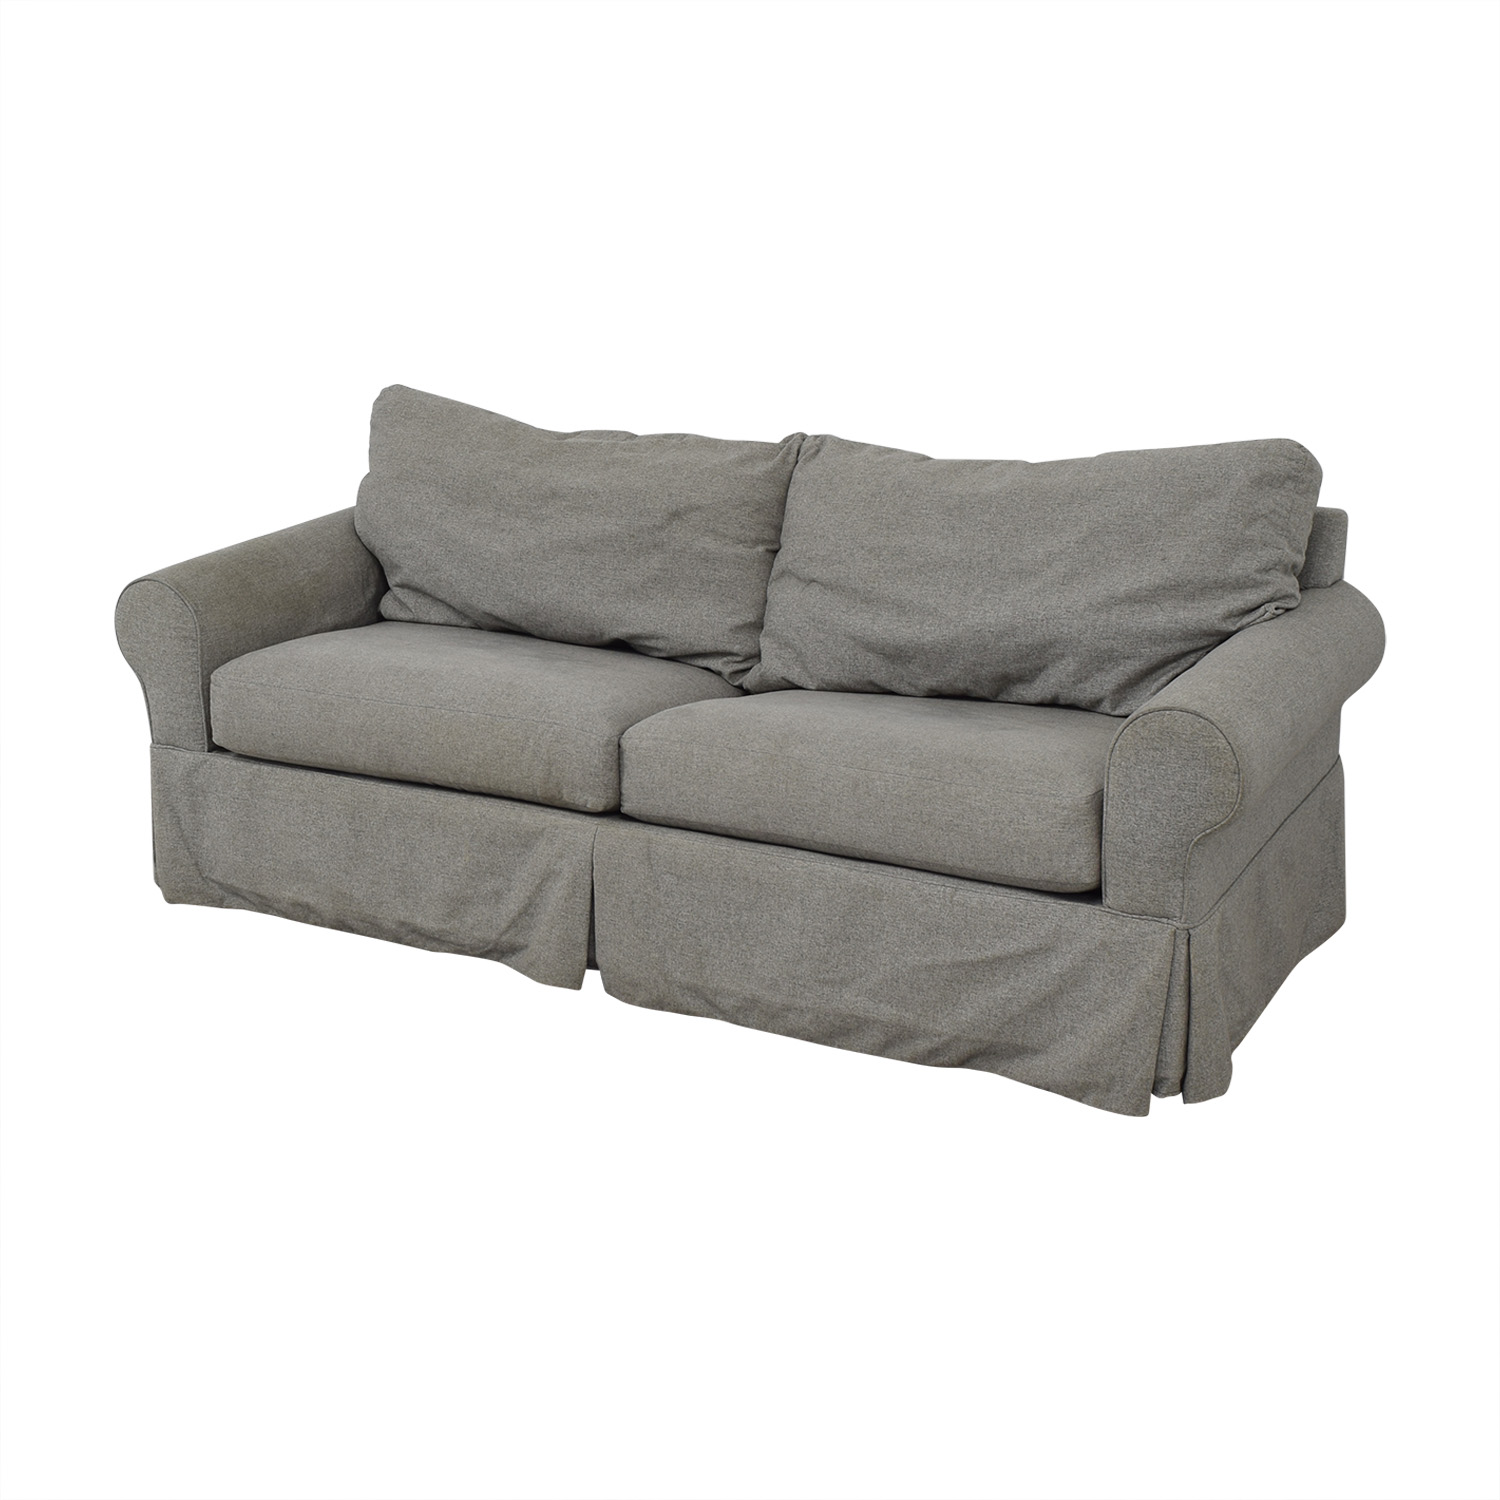 - 90% OFF - La-Z-Boy La-Z-Boy Full Sleeper Sofa / Sofas